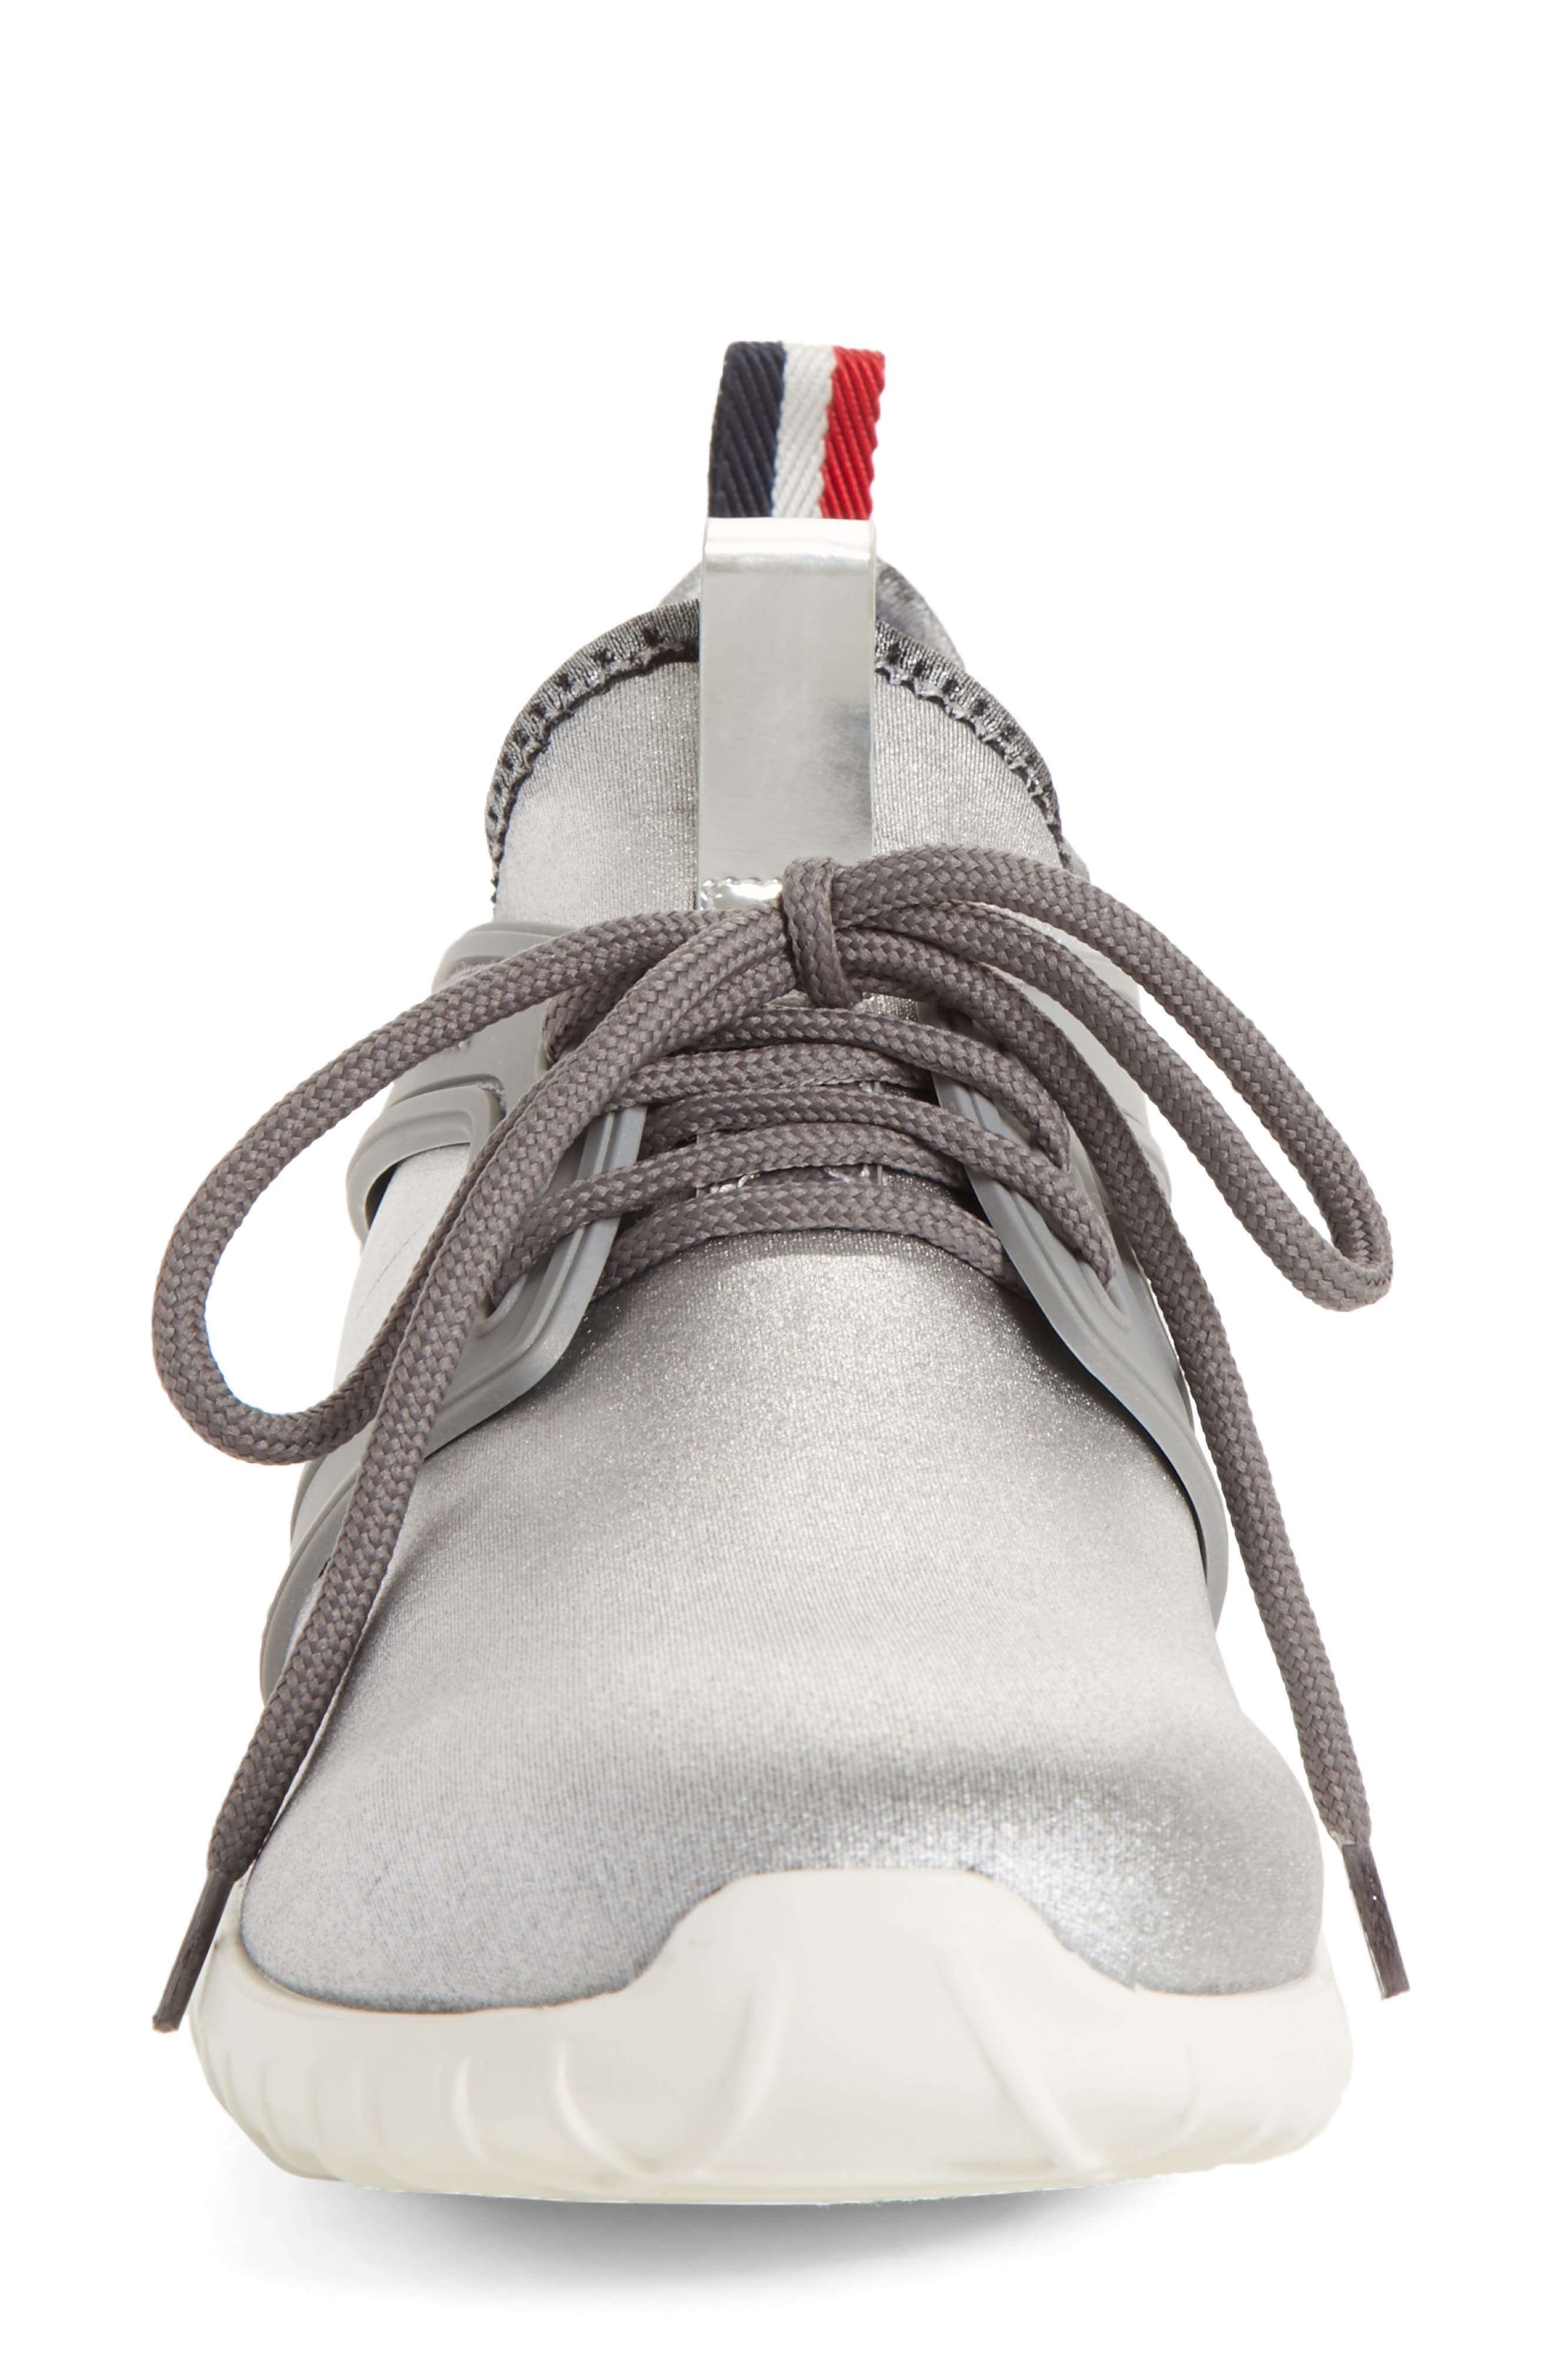 Meline Runner Sneaker,                             Alternate thumbnail 4, color,                             044